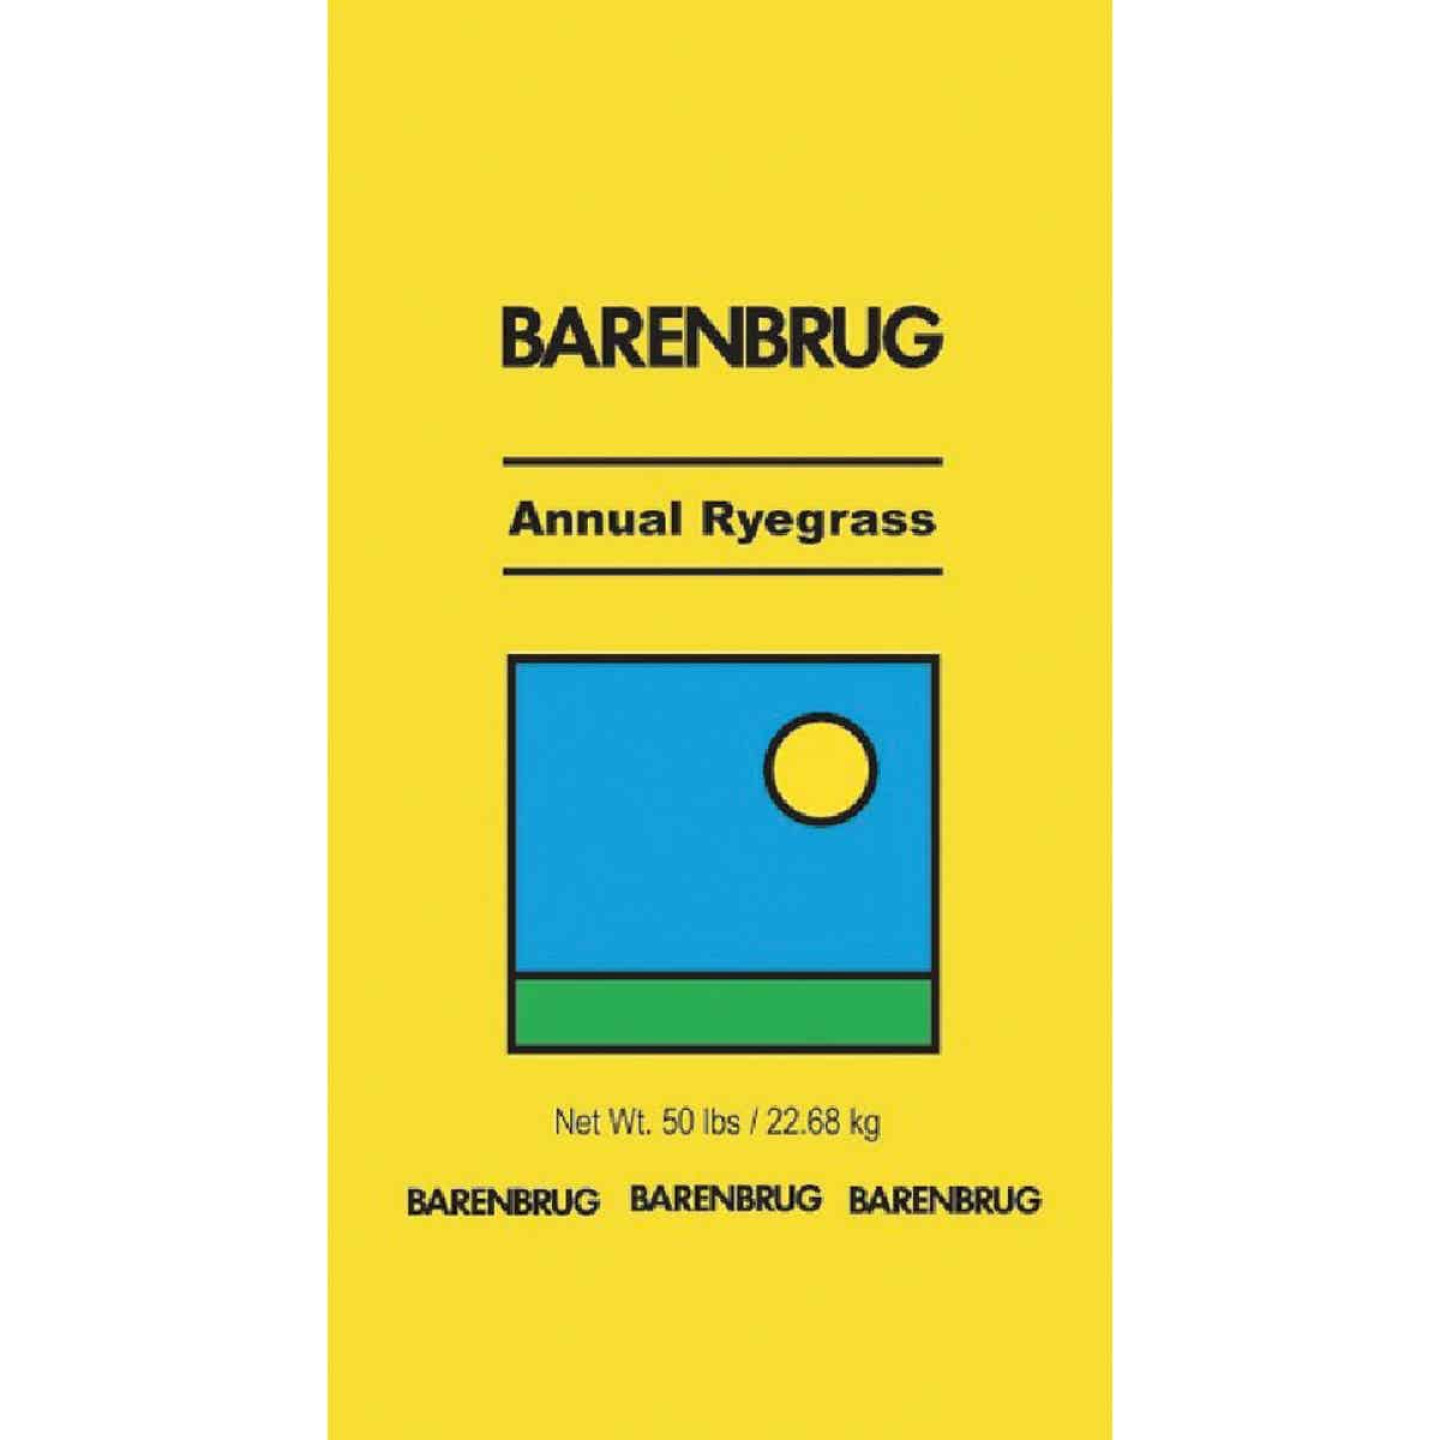 Barenbrug 50 Lb. 6250 Sq. Ft. Coverage 100% Annual Ryegrass Grass Seed Image 1